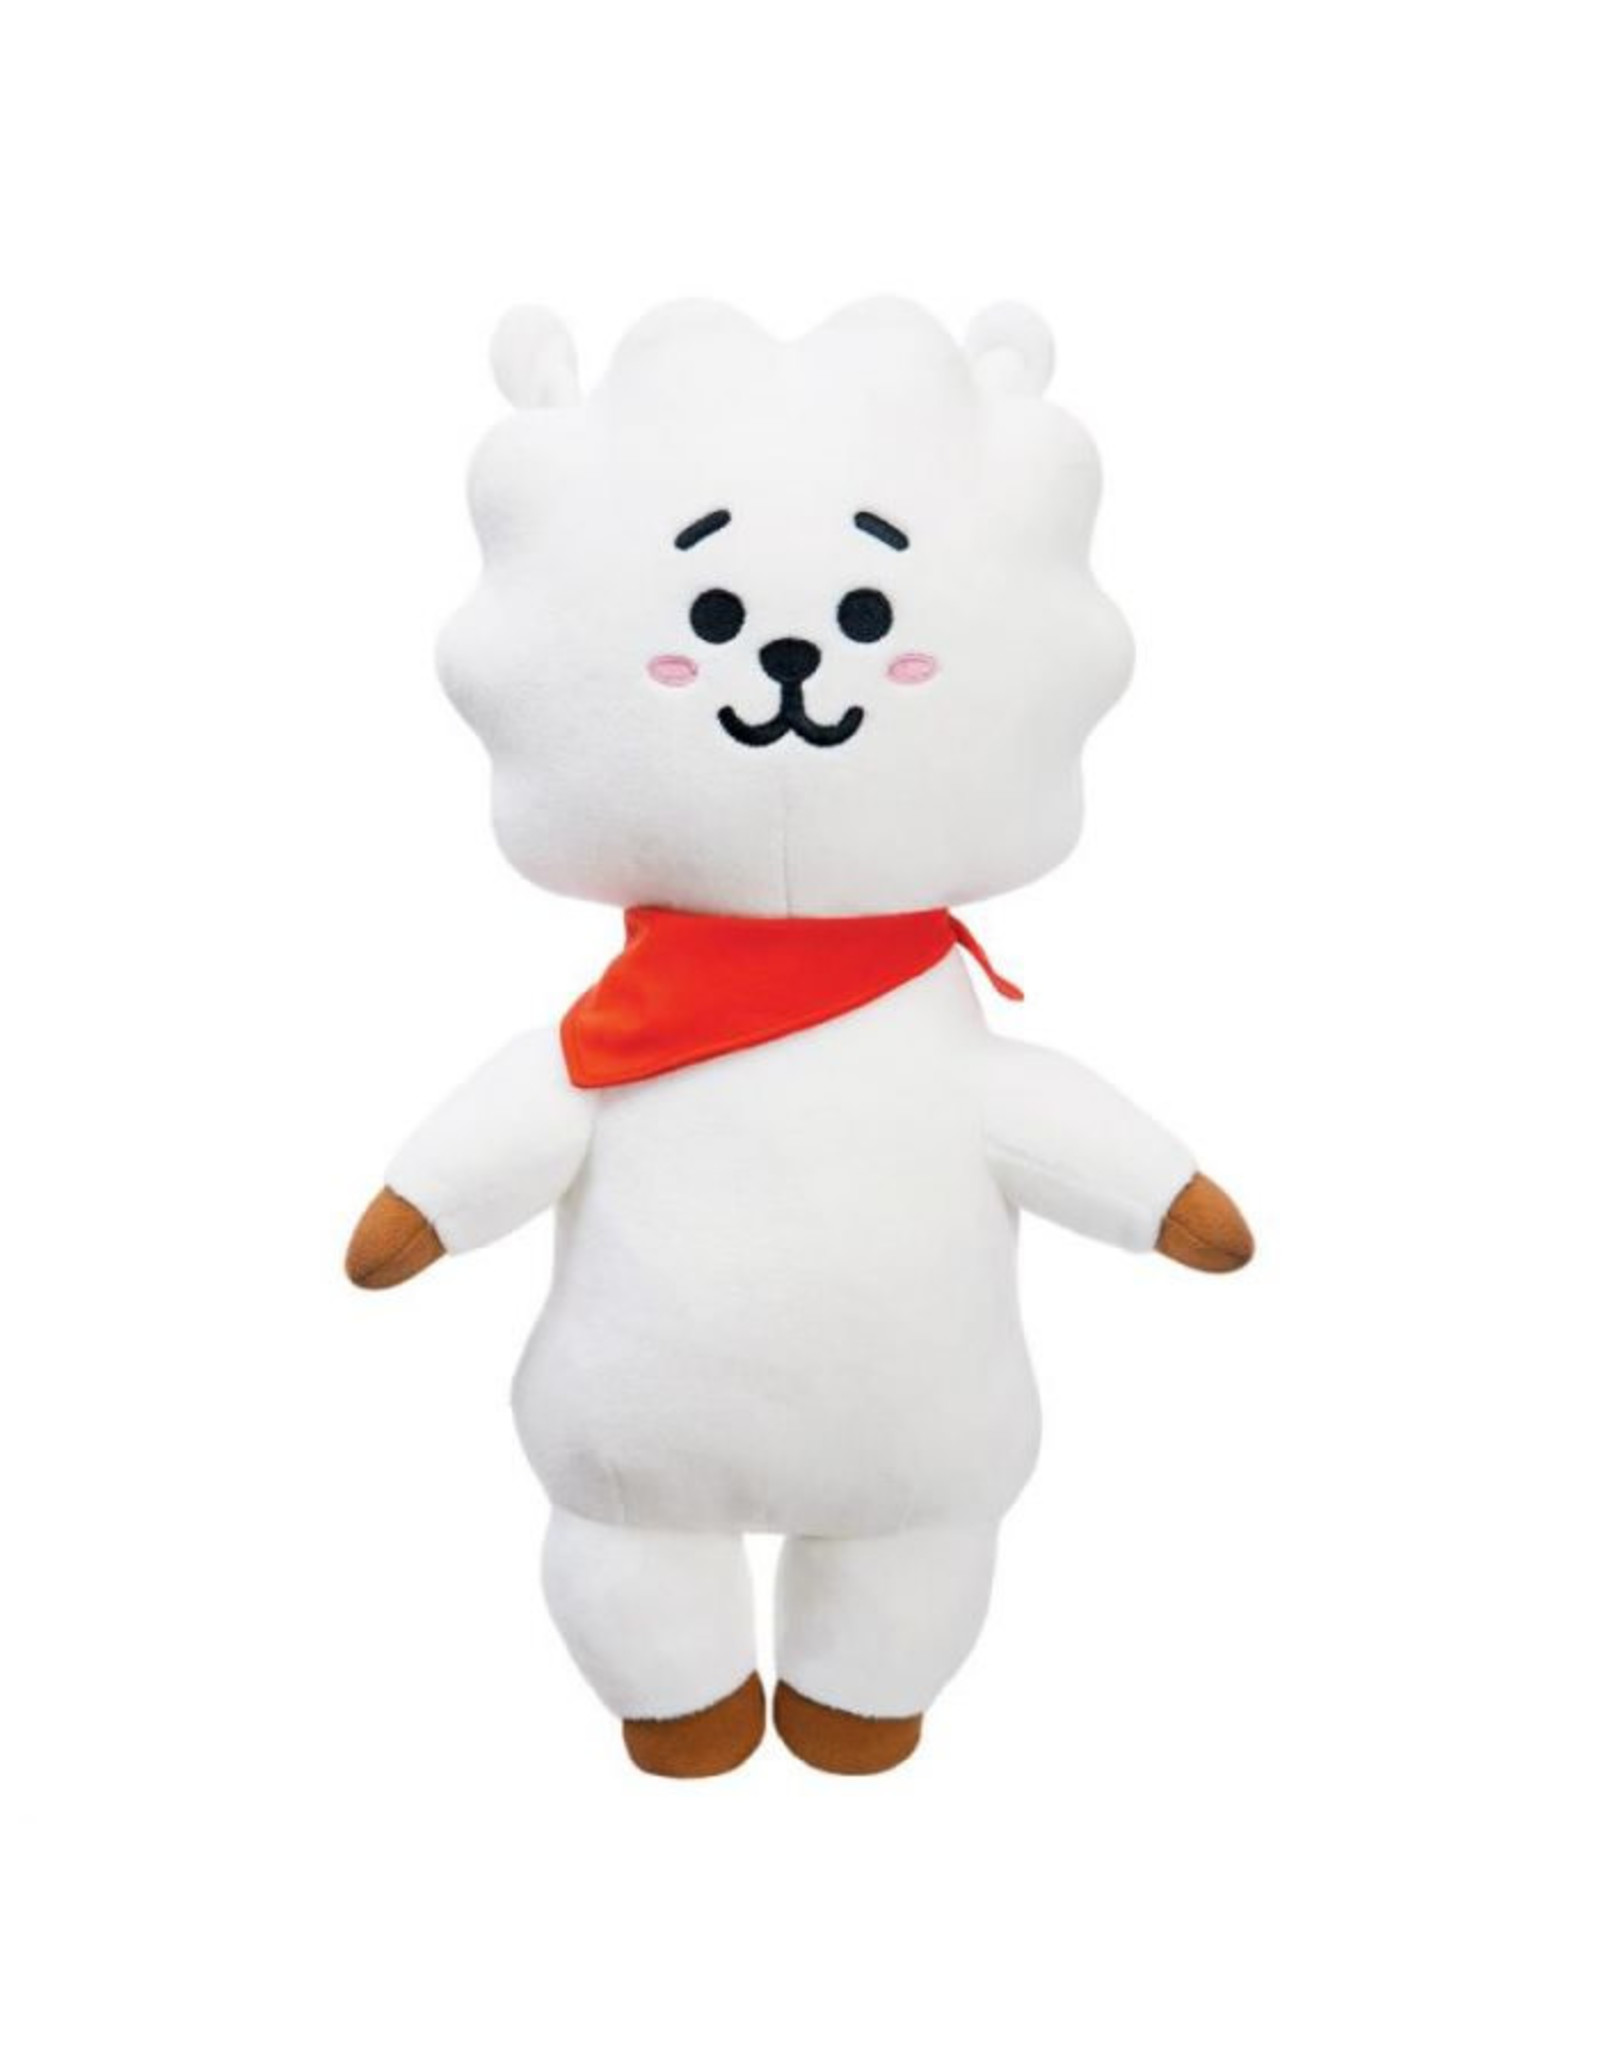 BT21 - RJ - Line Friends Big Plush - 36 cm